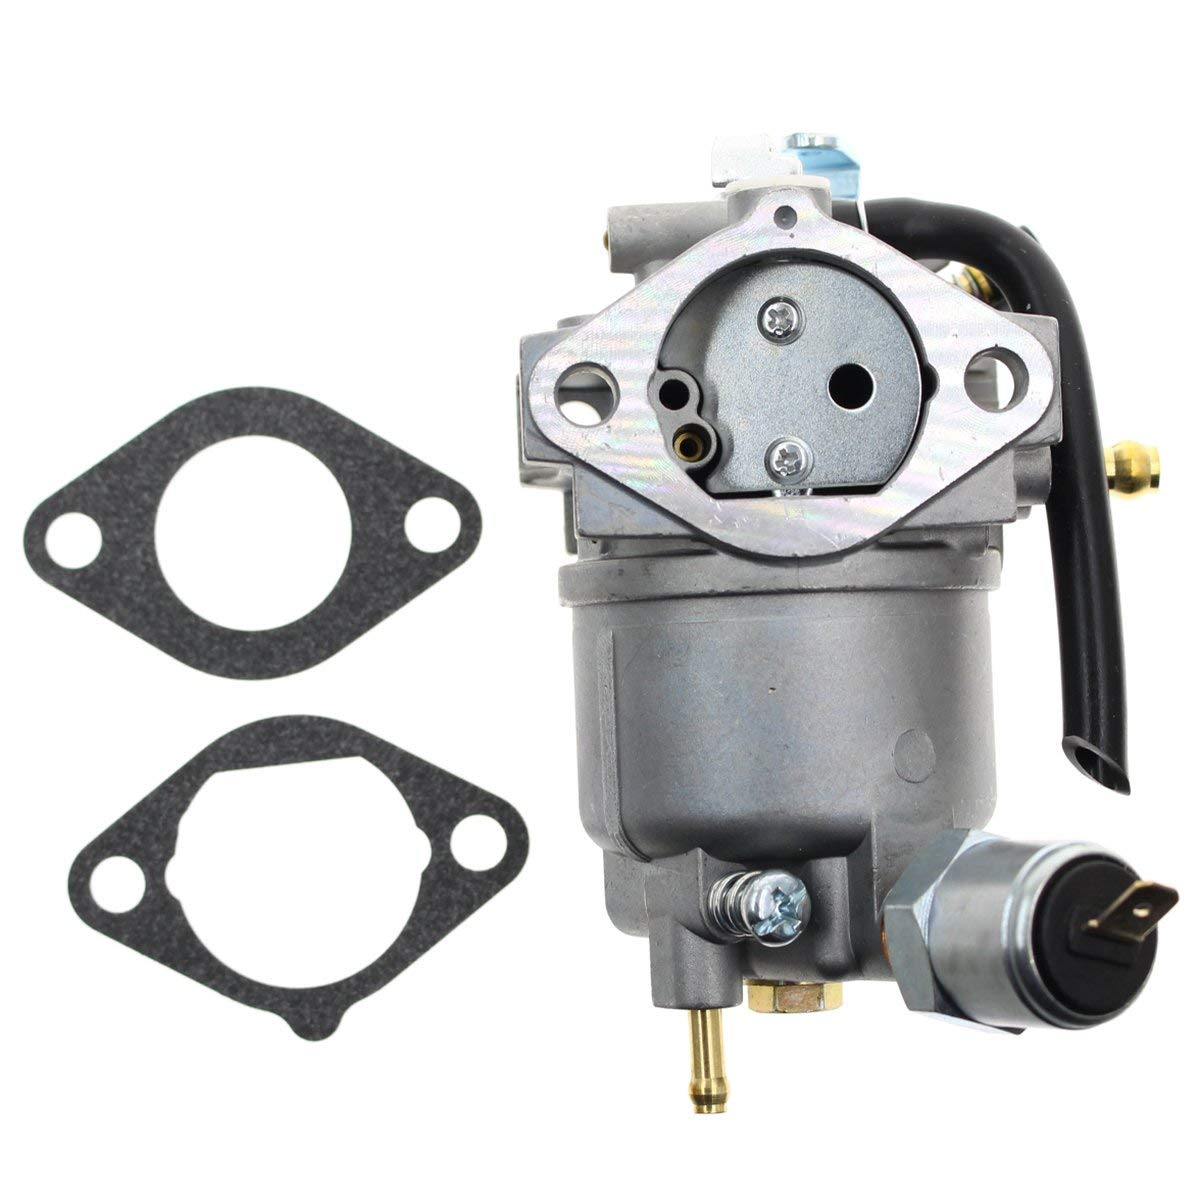 Cheap 28mm Mikuni Carburetor, find 28mm Mikuni Carburetor deals on